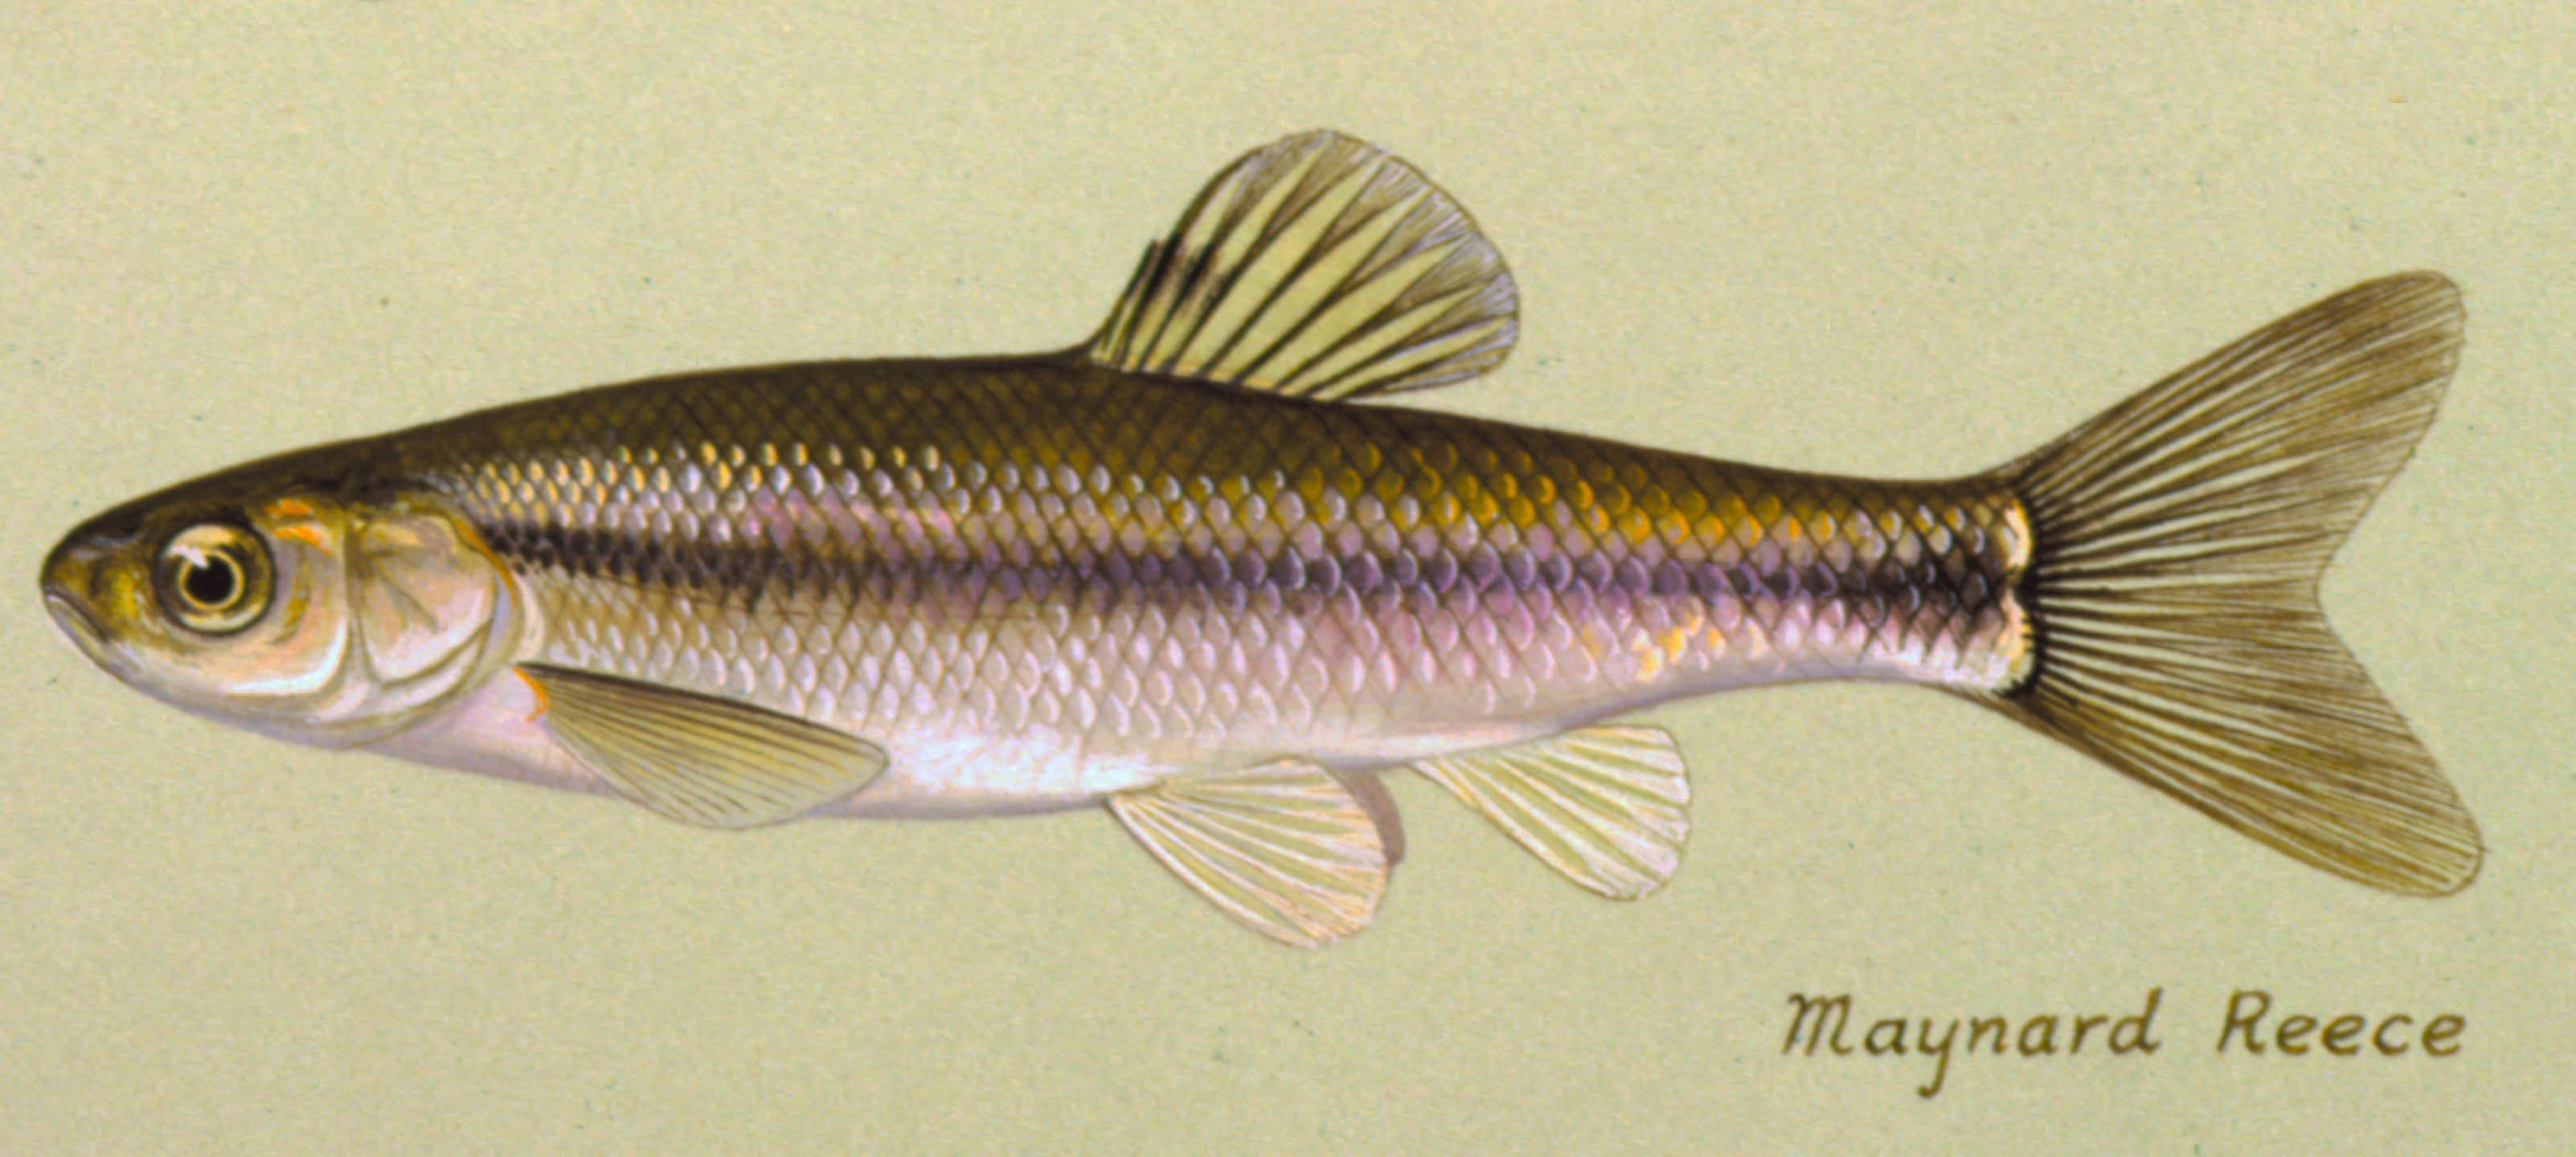 Fathead Minnow, illustration by Maynard Reece, from Iowa Fish and Fishing.